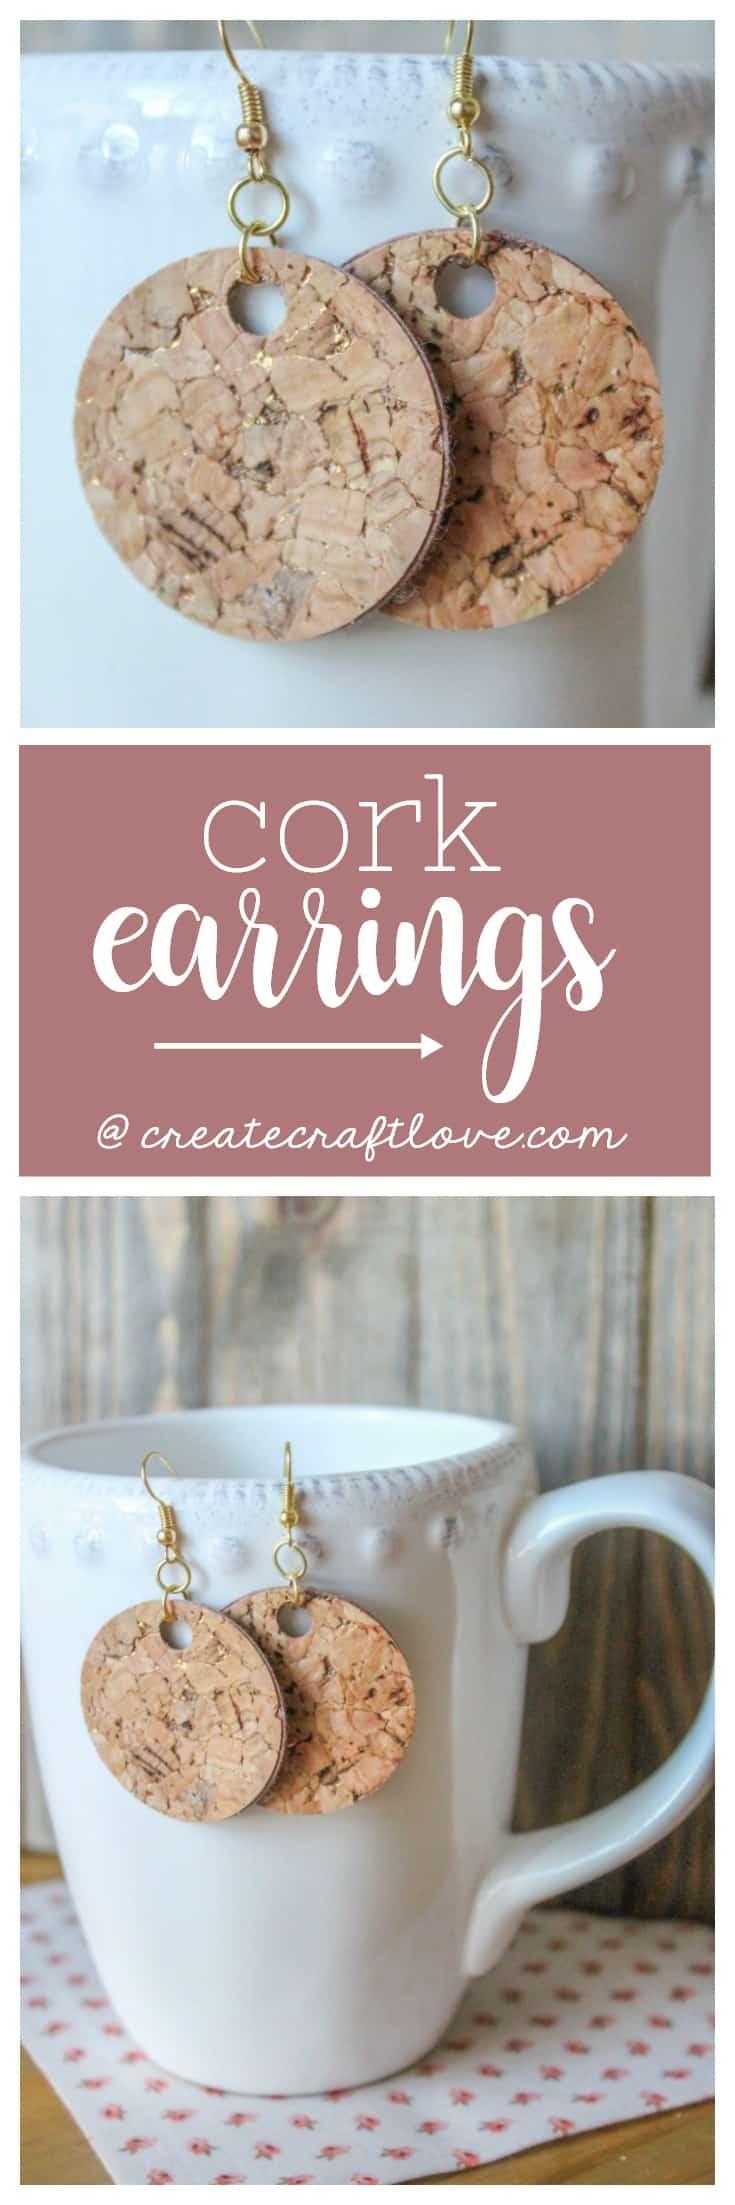 These gold flecked Cork Earrings are the perfect accessory to your favorite outfit!